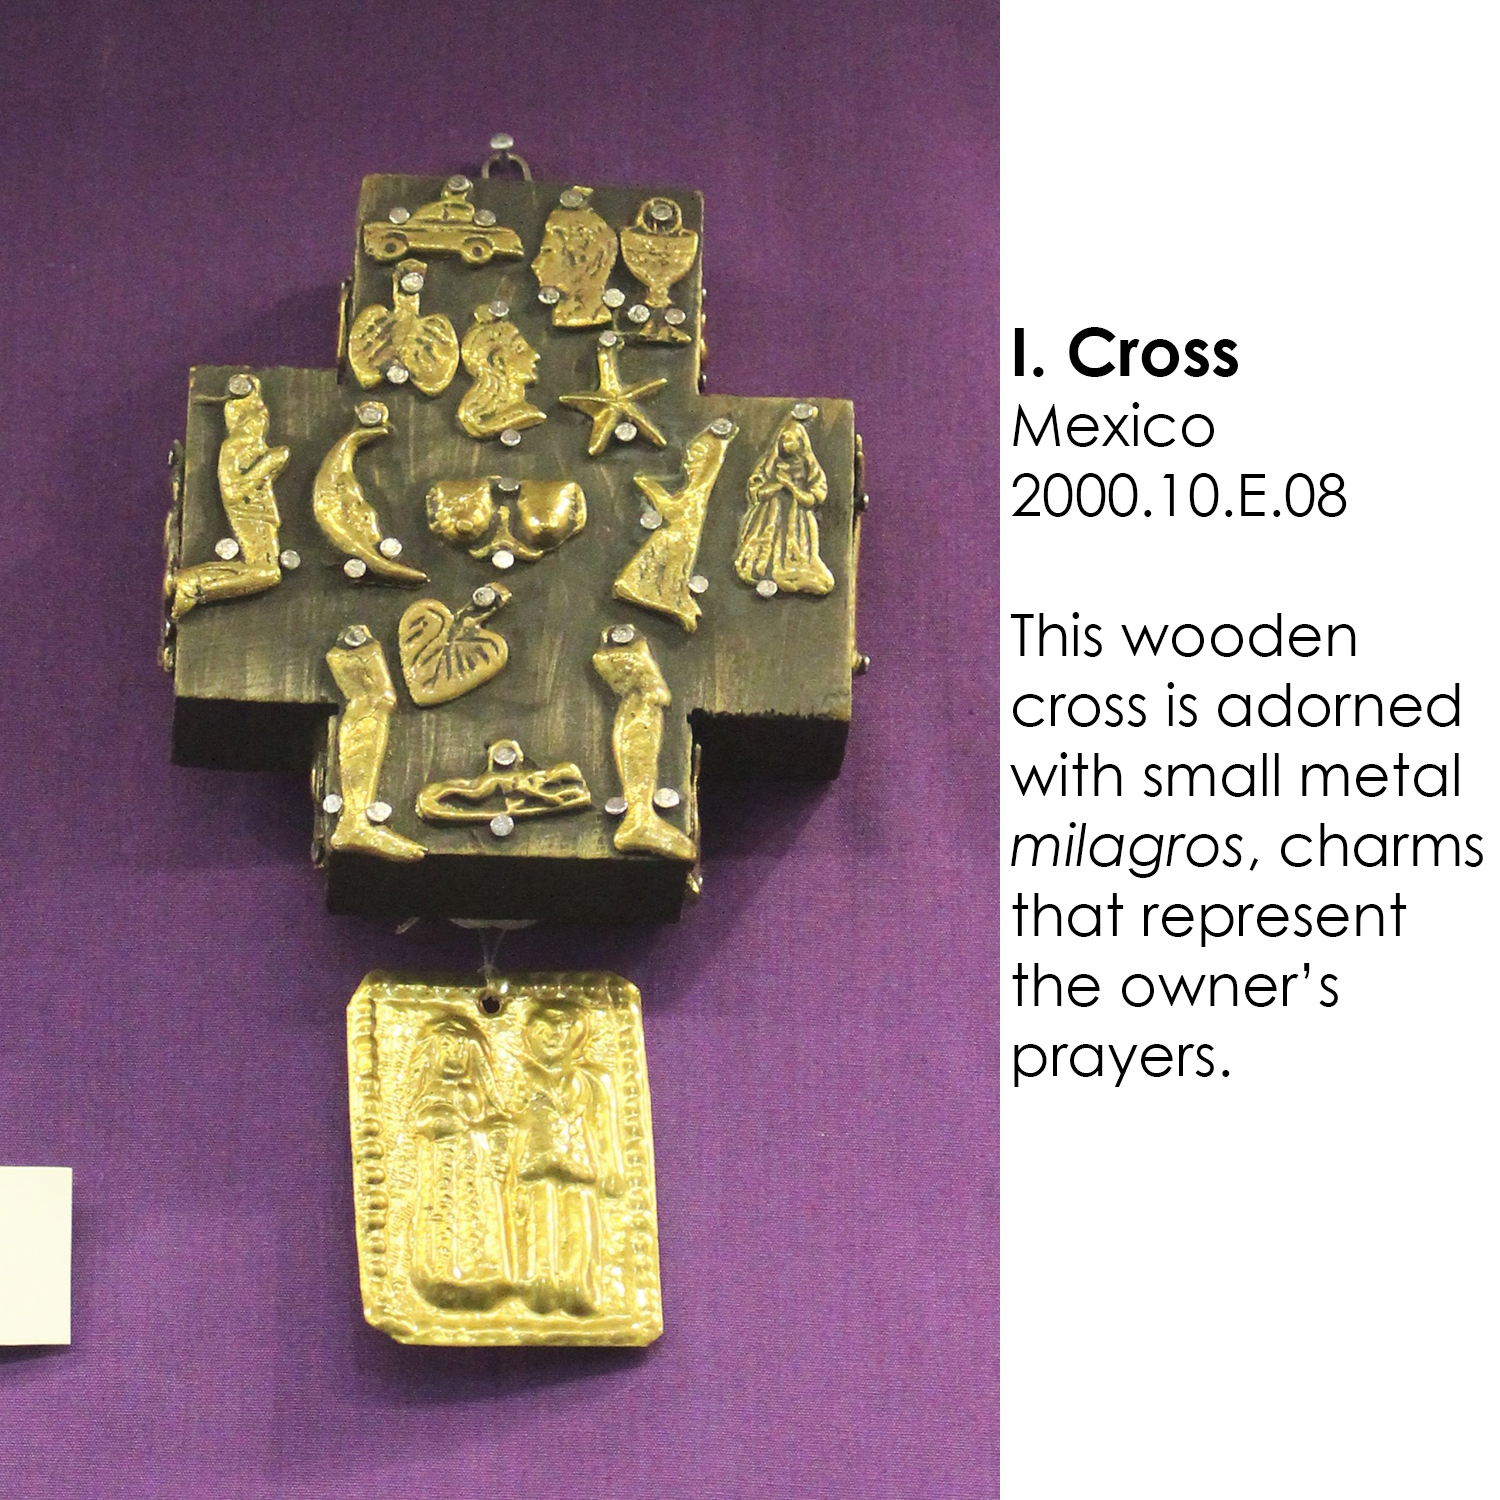 Mexican cross with milagros